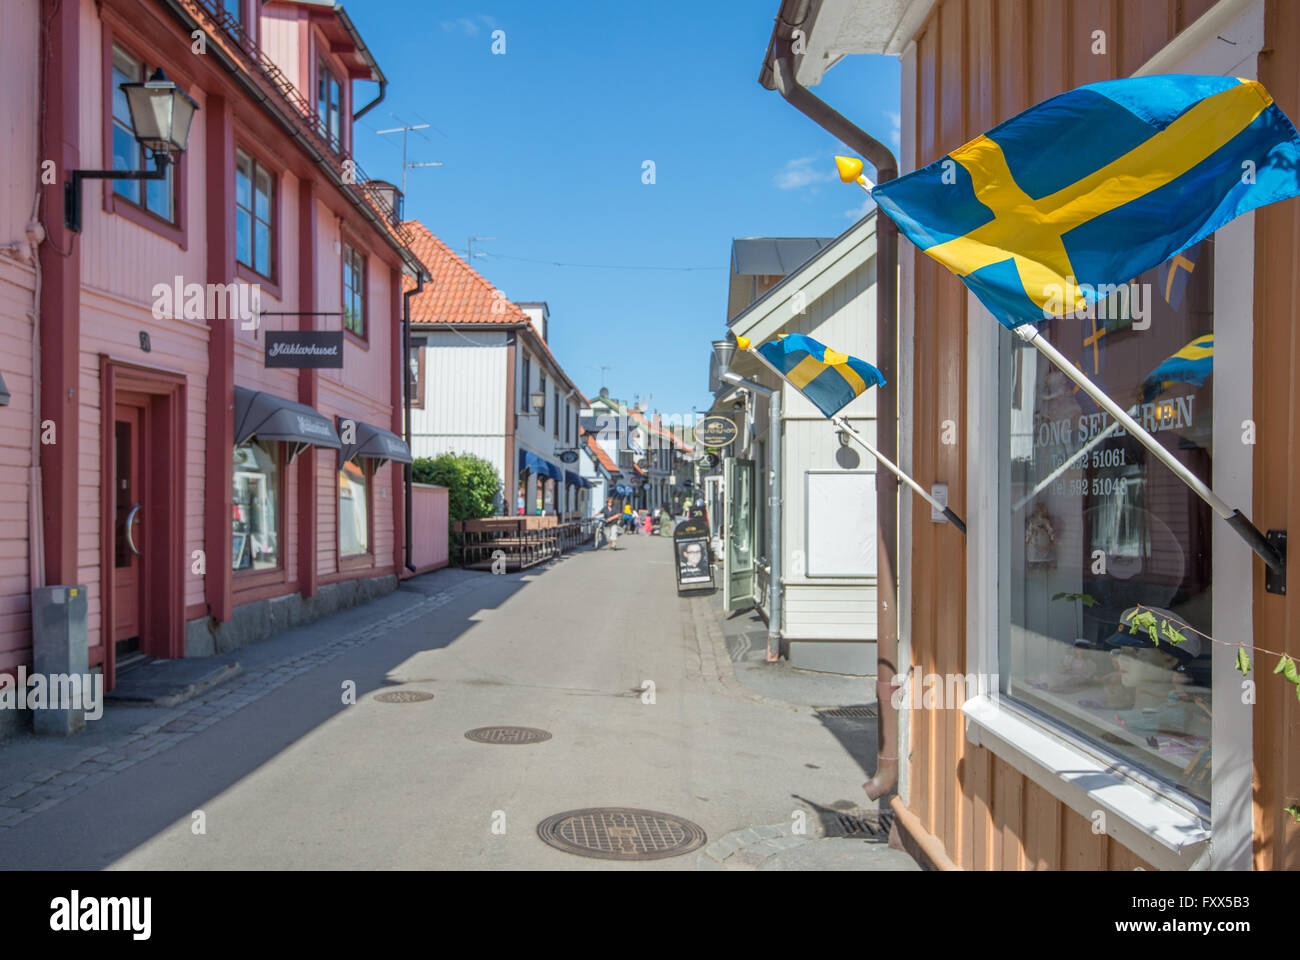 Sigtuna - the oldest town in Sweden - Stock Image